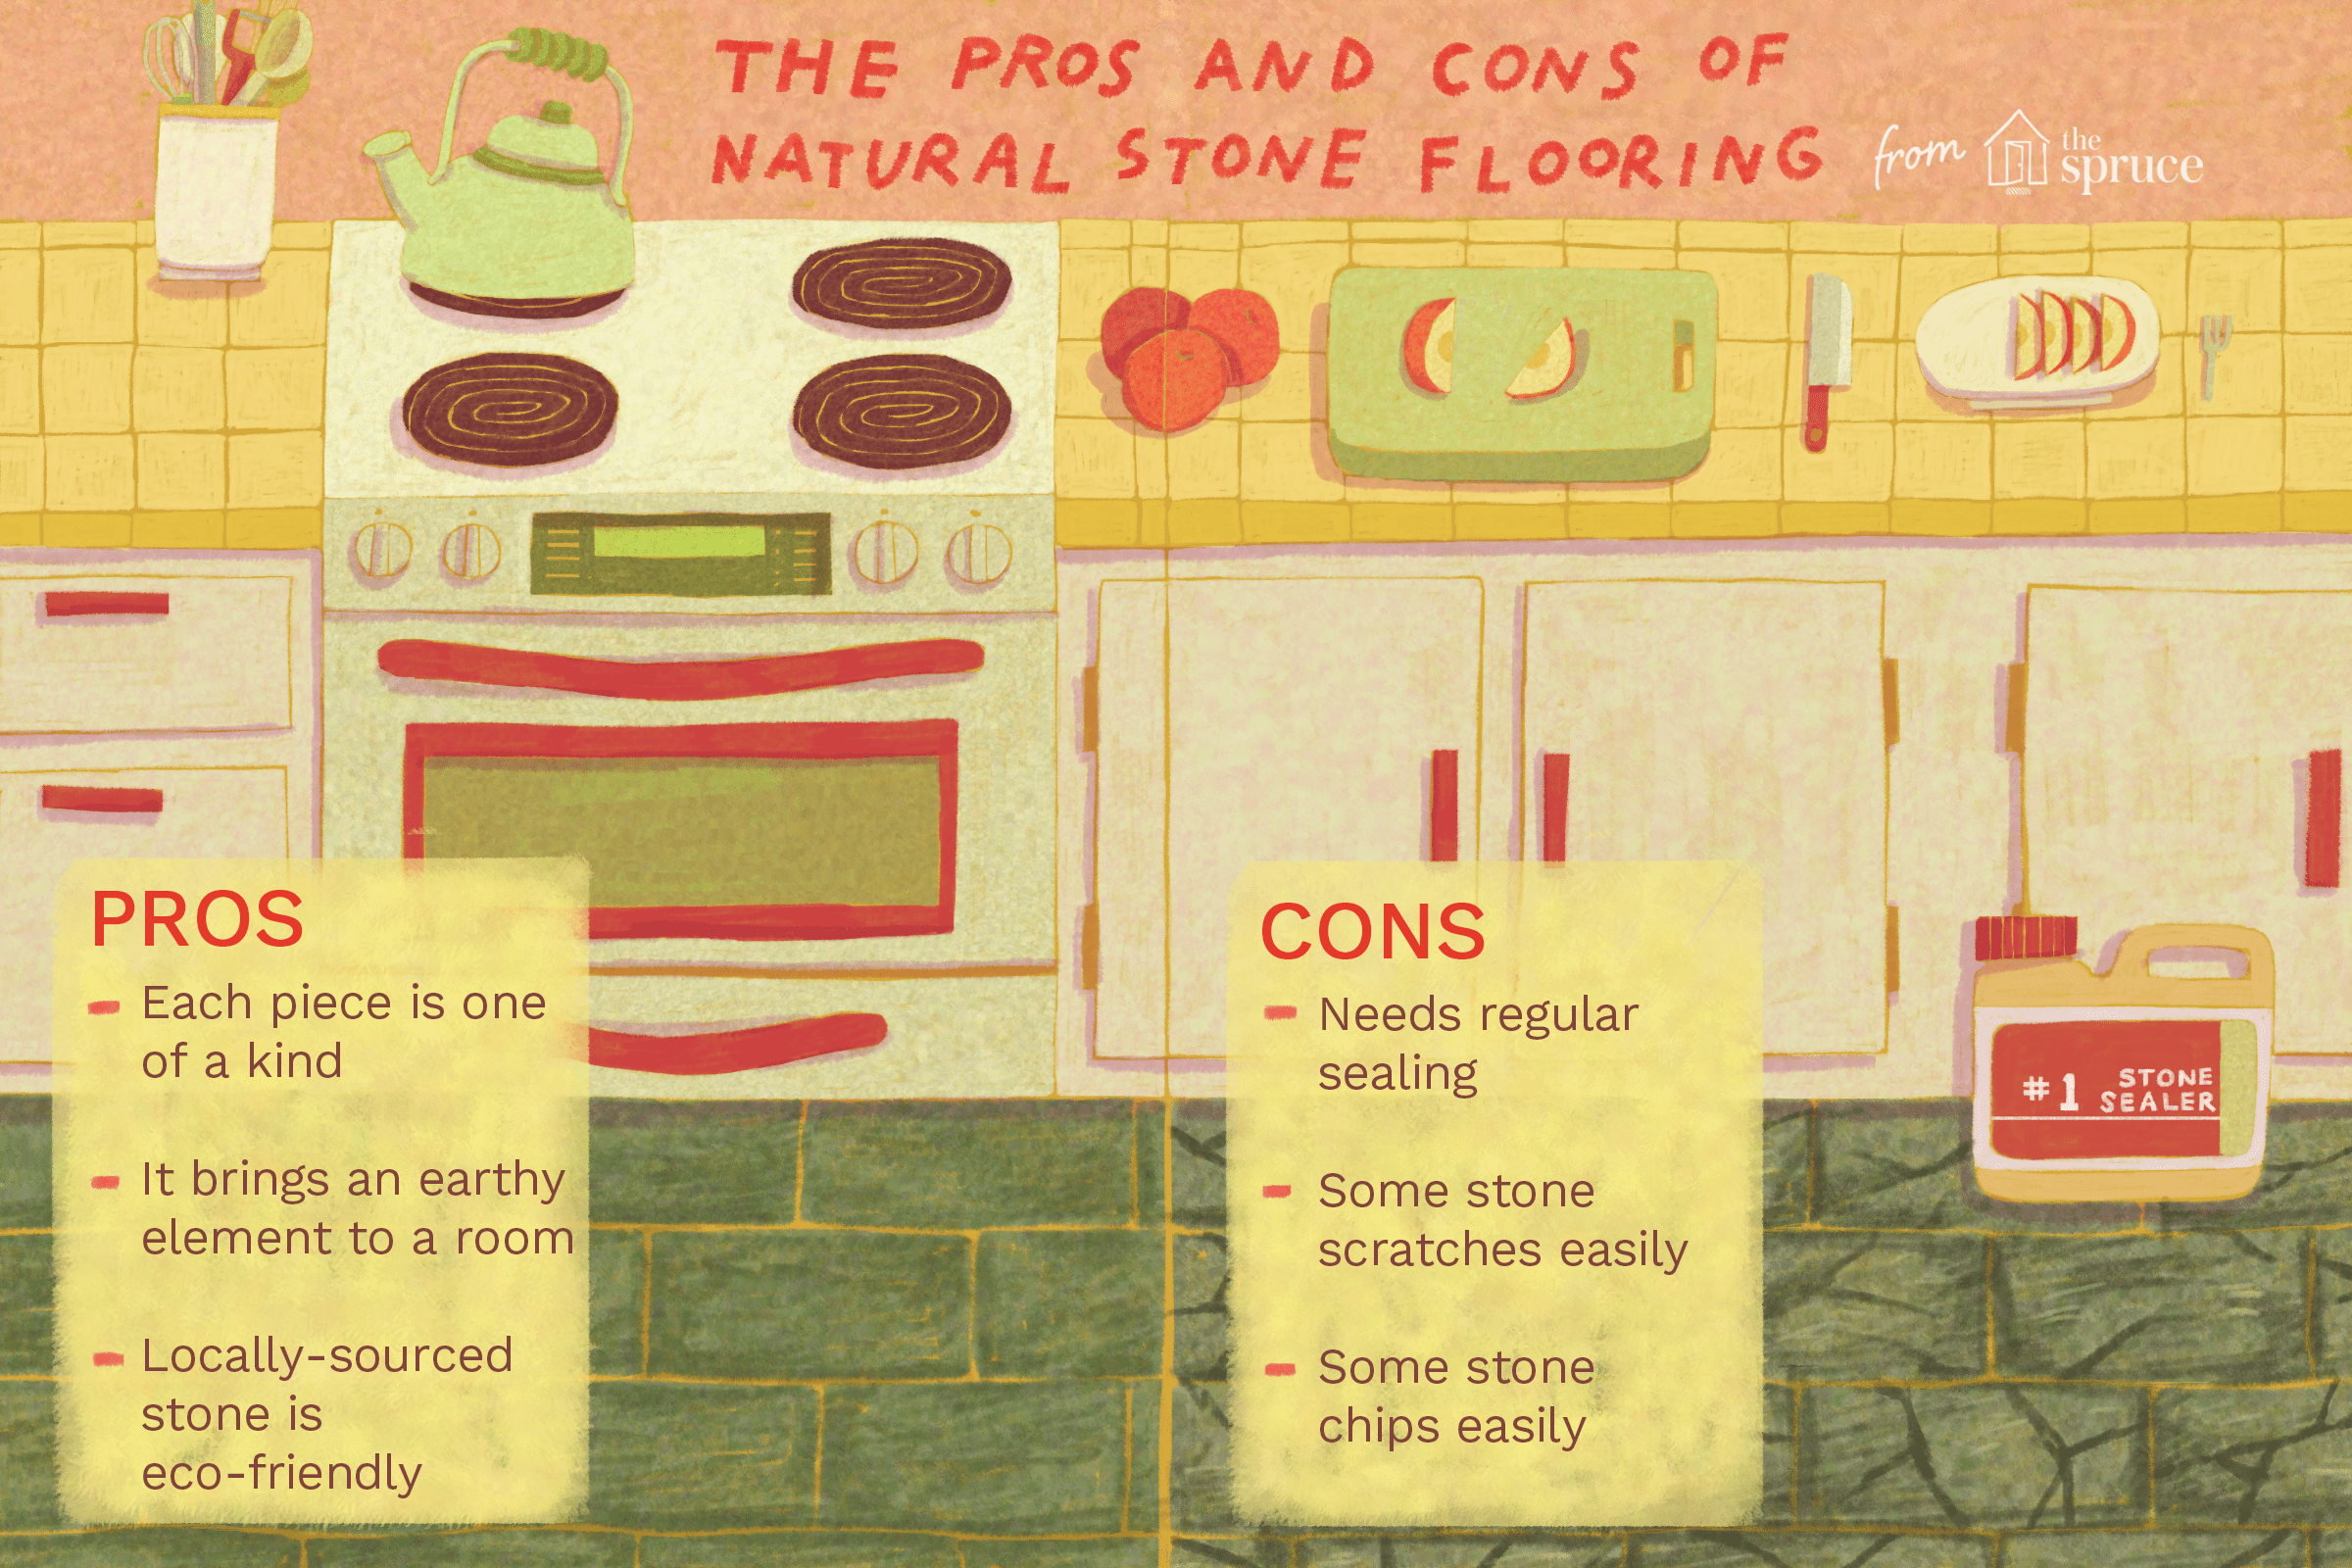 pros and cons of natural stone flooring illustration